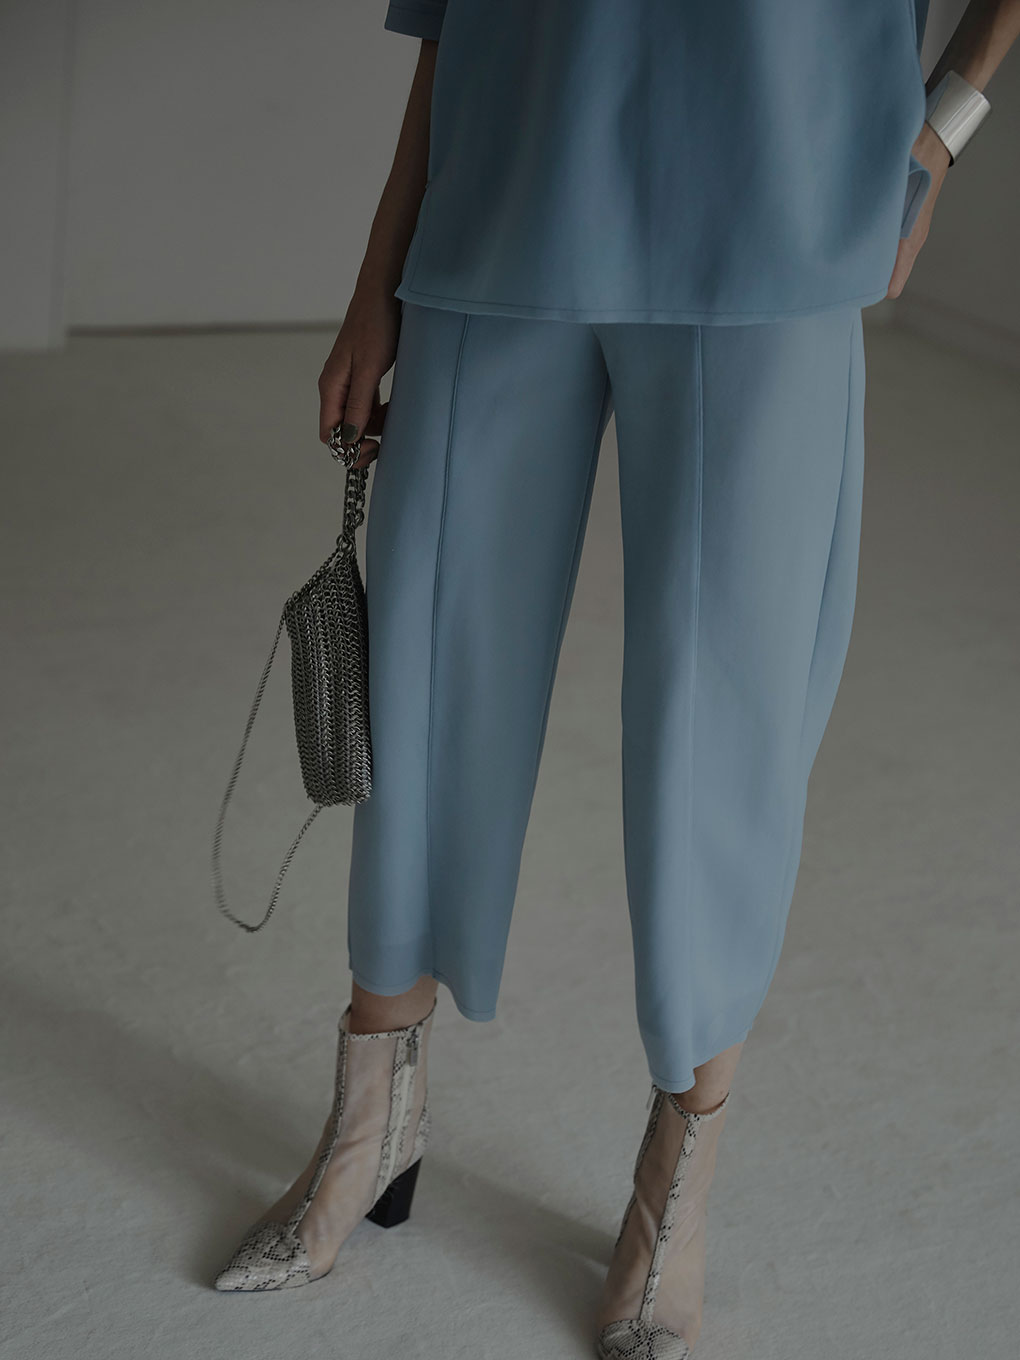 SHEER CARD BOARD PANTS